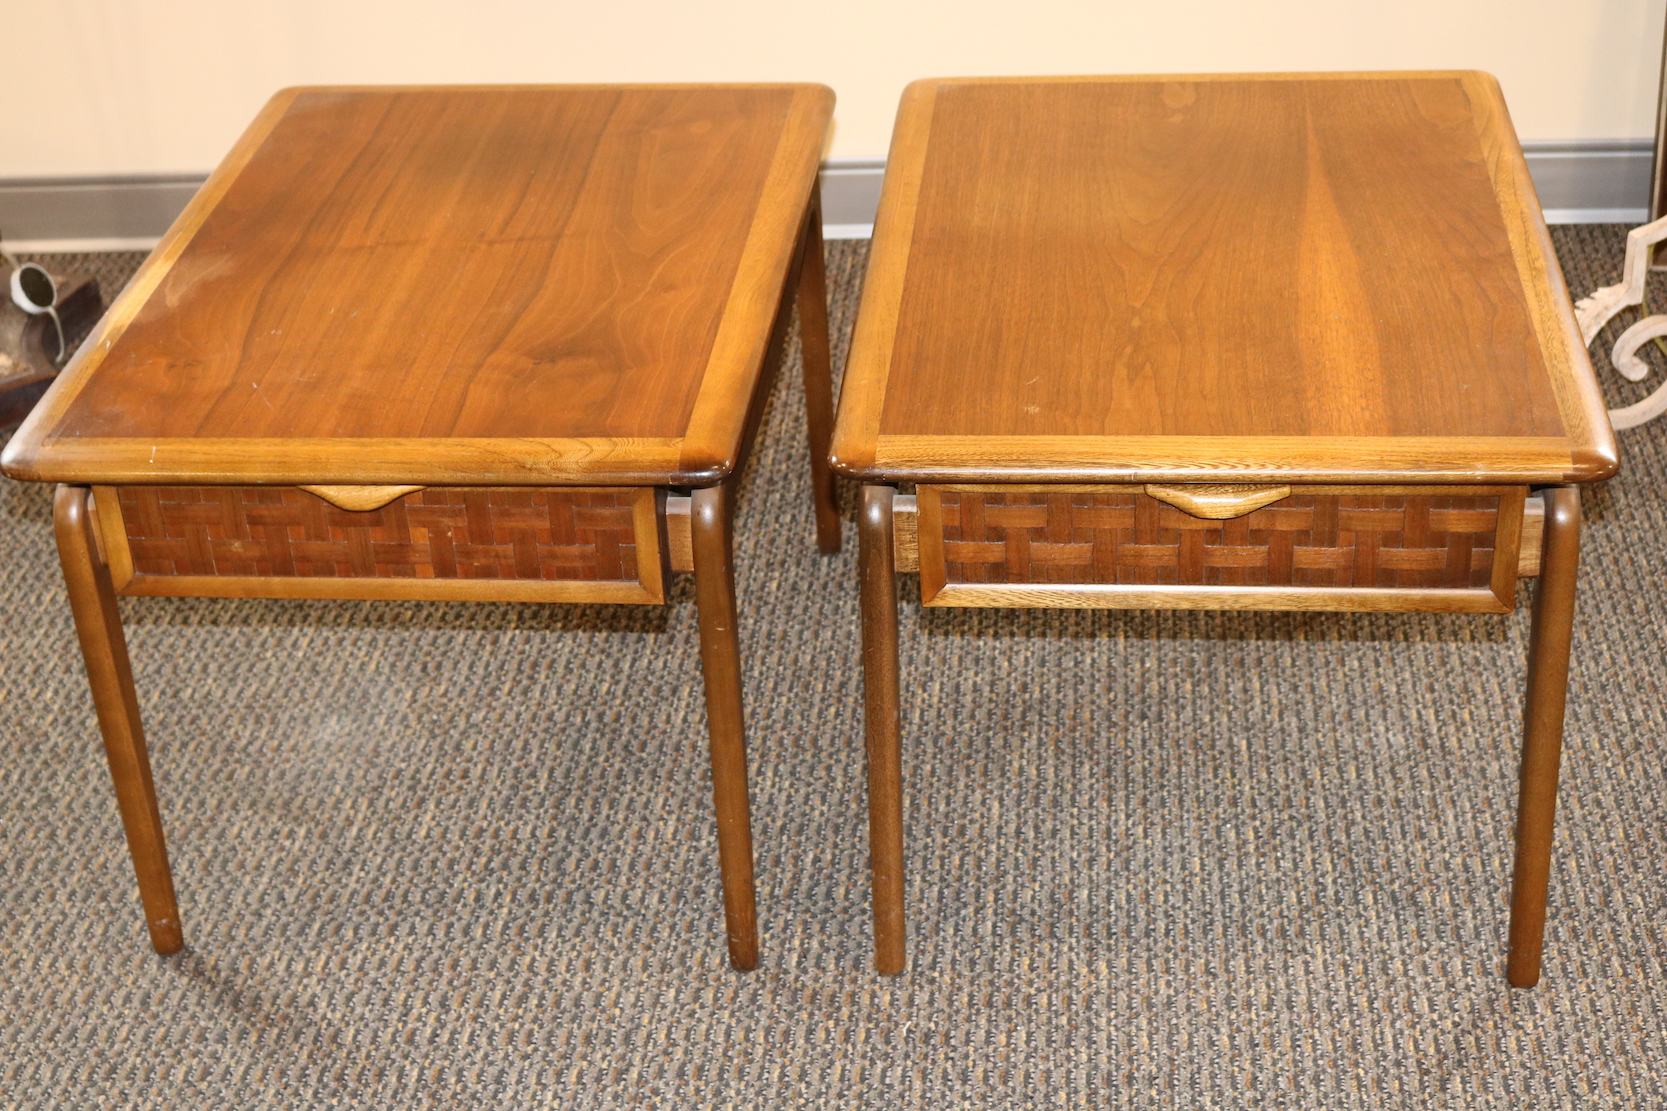 Ordinaire ... Lane End Tables Mid Century Modern